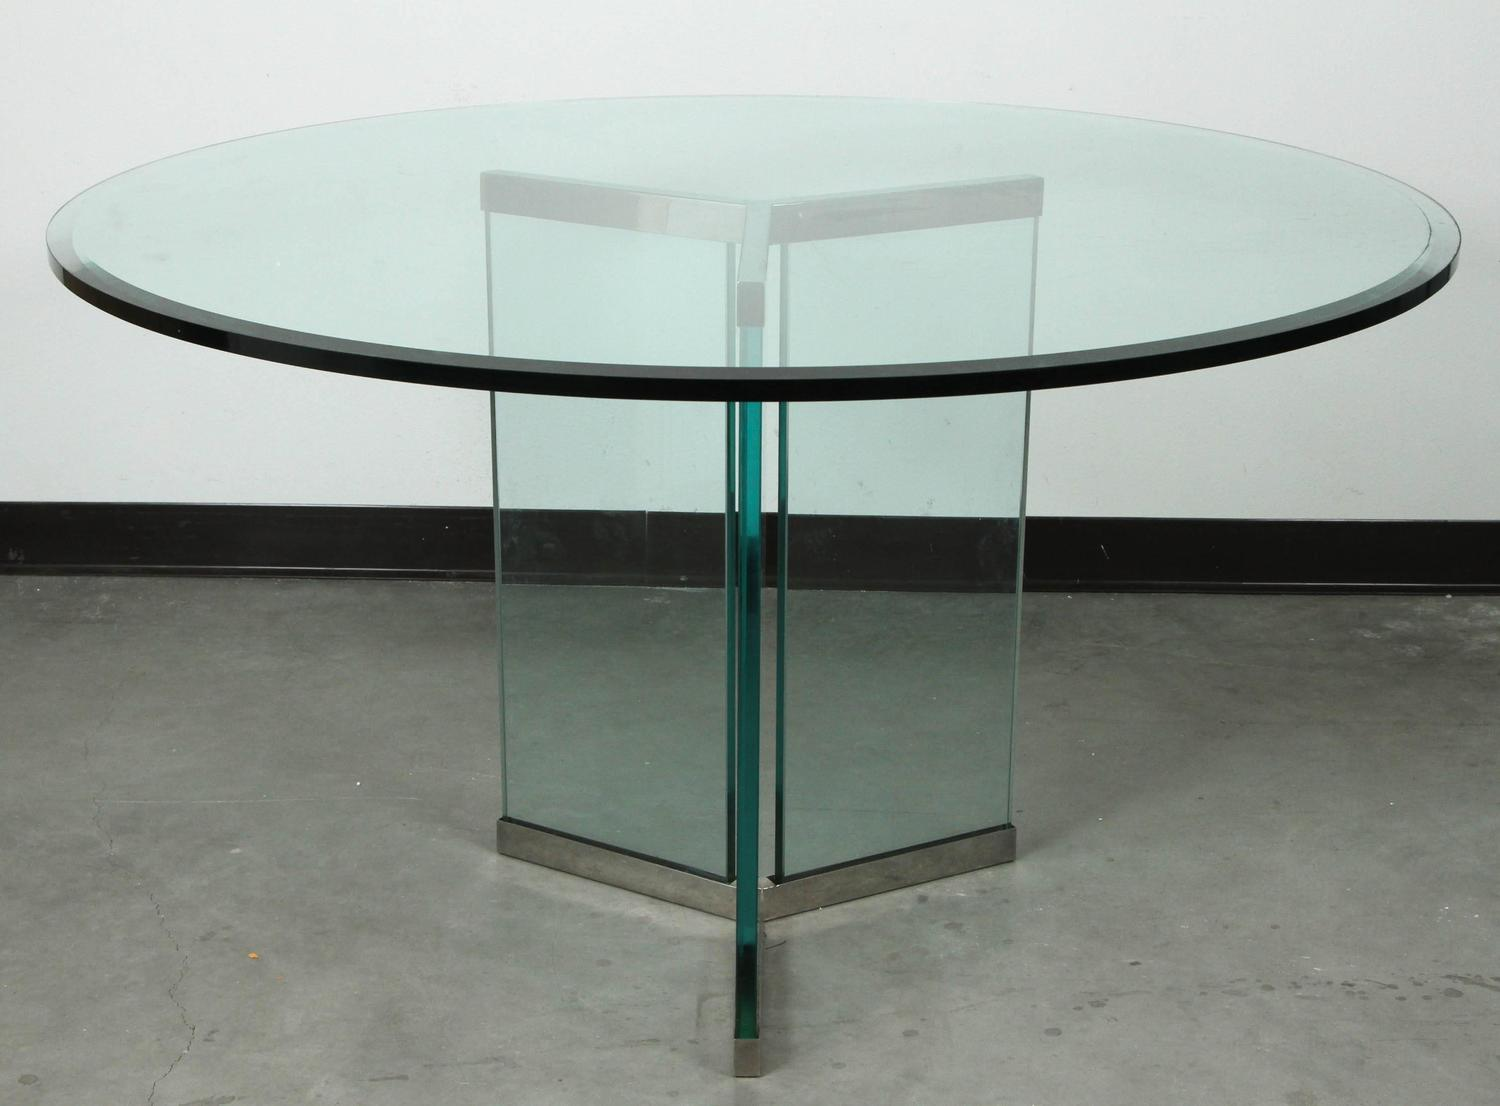 Triangular Base Dining Table by Pace For Sale at 1stdibs : DANM7506z from www.1stdibs.com size 1500 x 1106 jpeg 91kB